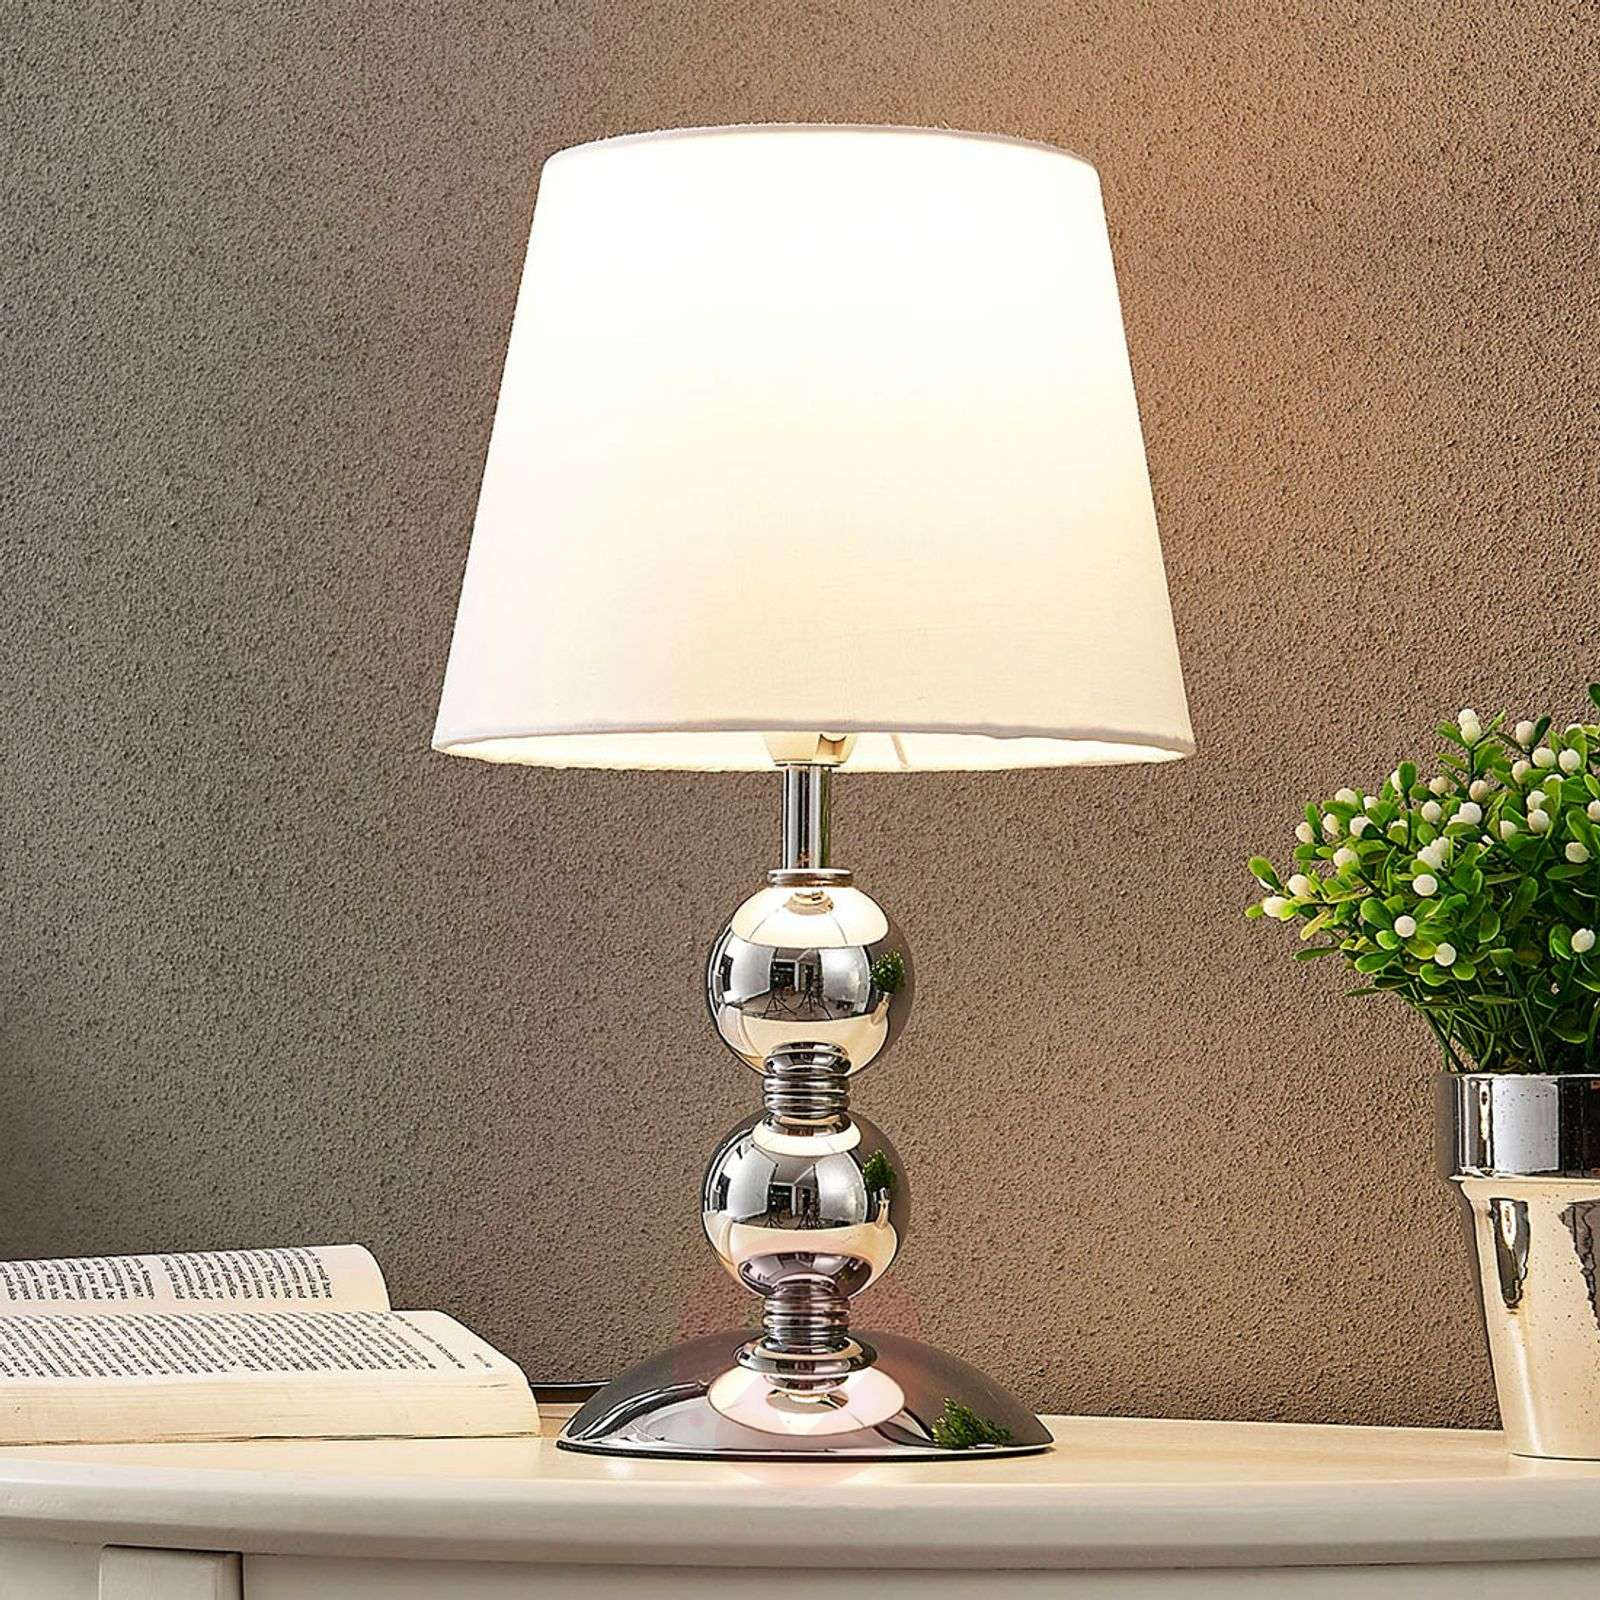 Elegant LED table lamp Minna with a satin look-9621255-02